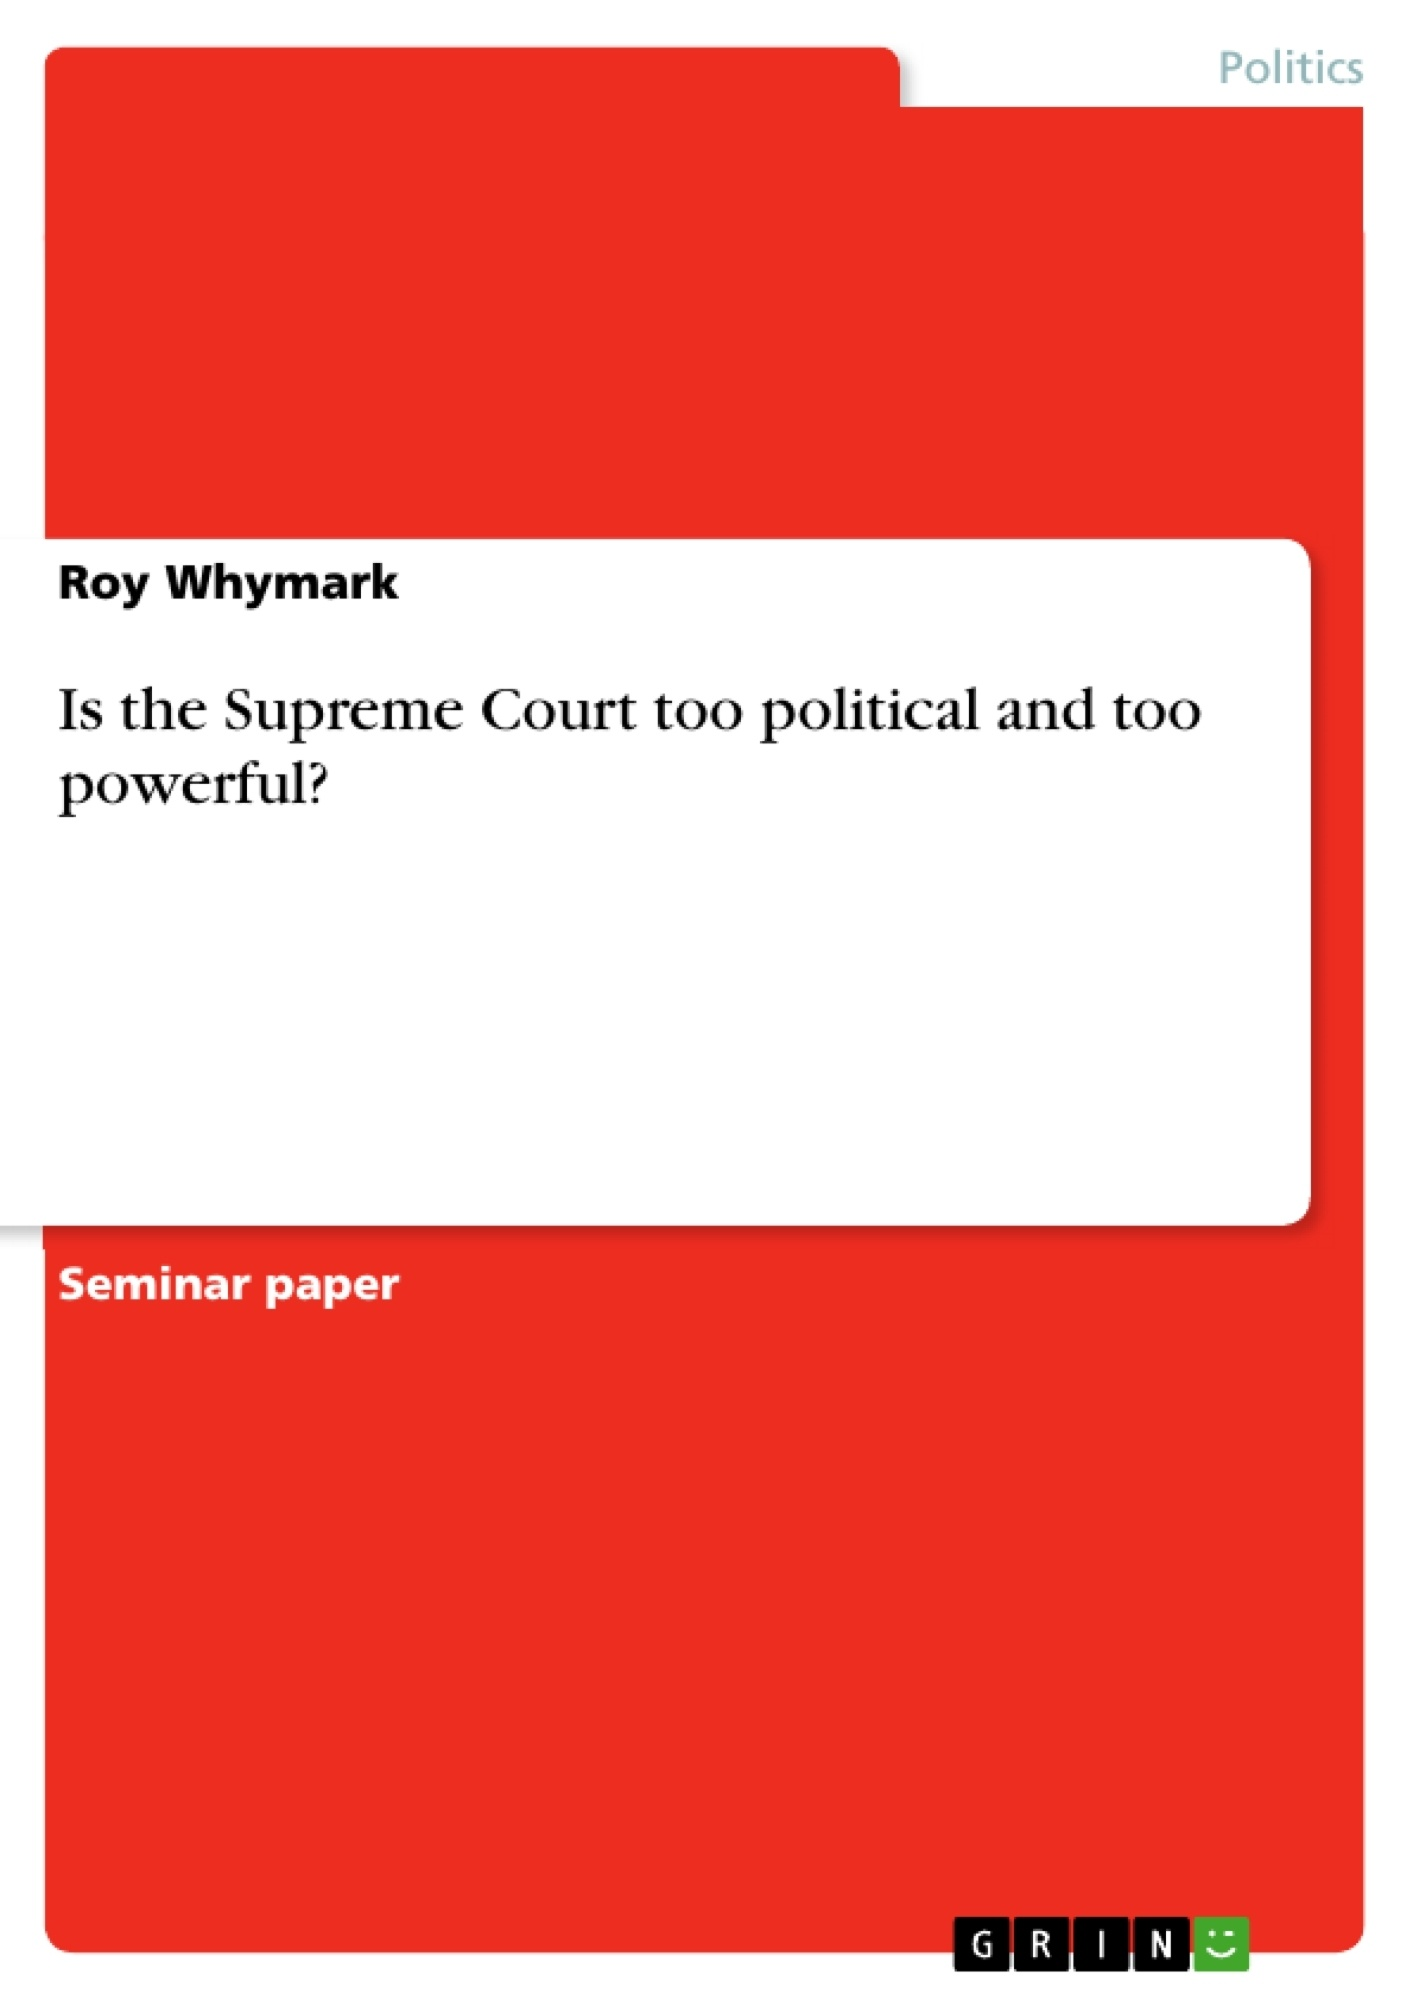 Title: Is the Supreme Court too political and too powerful?